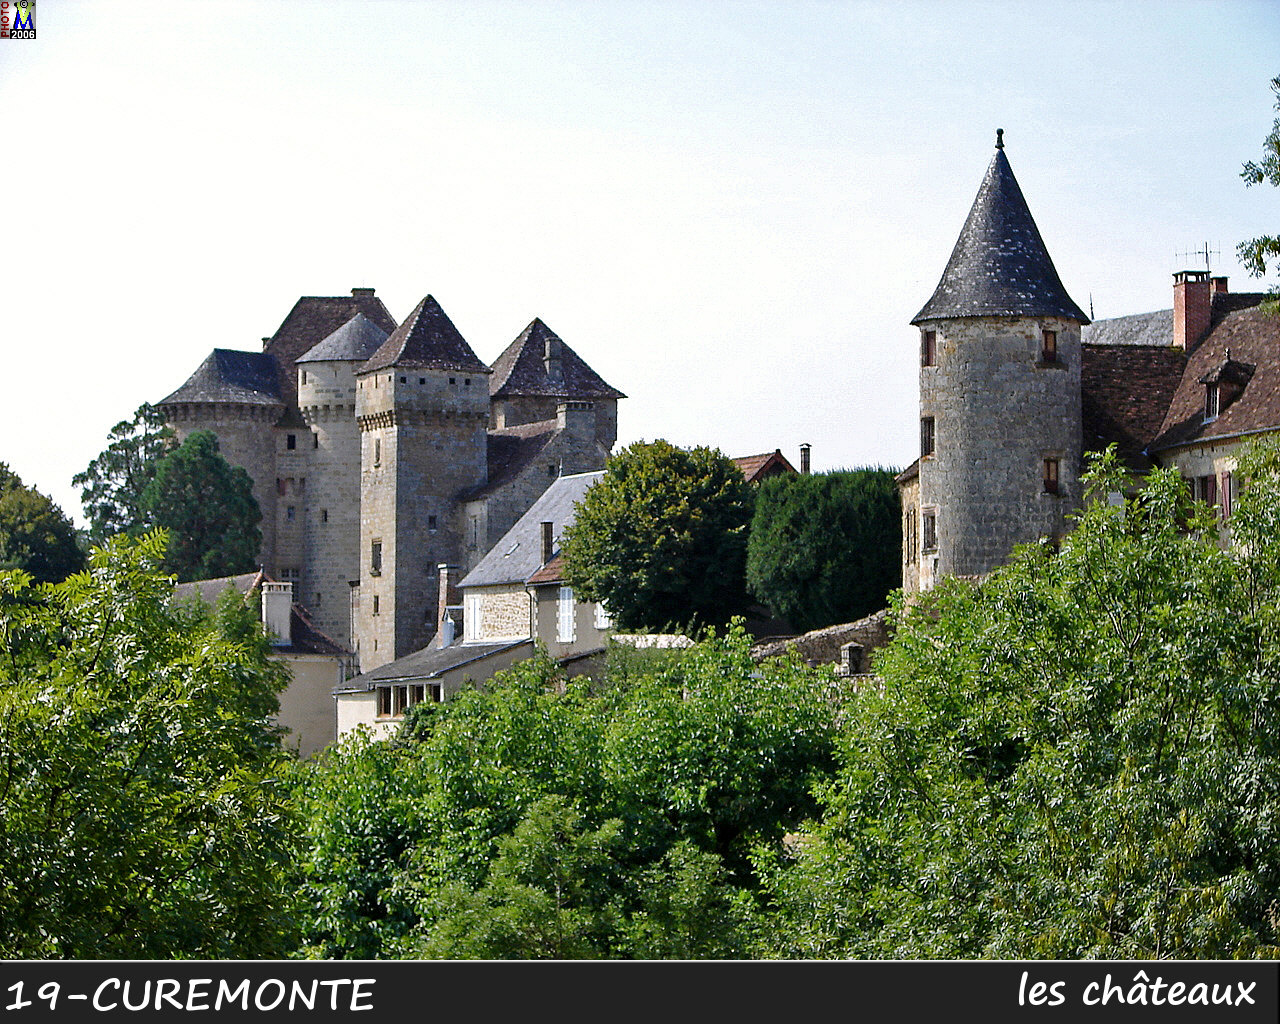 19CUREMONTE_chateau_112.jpg